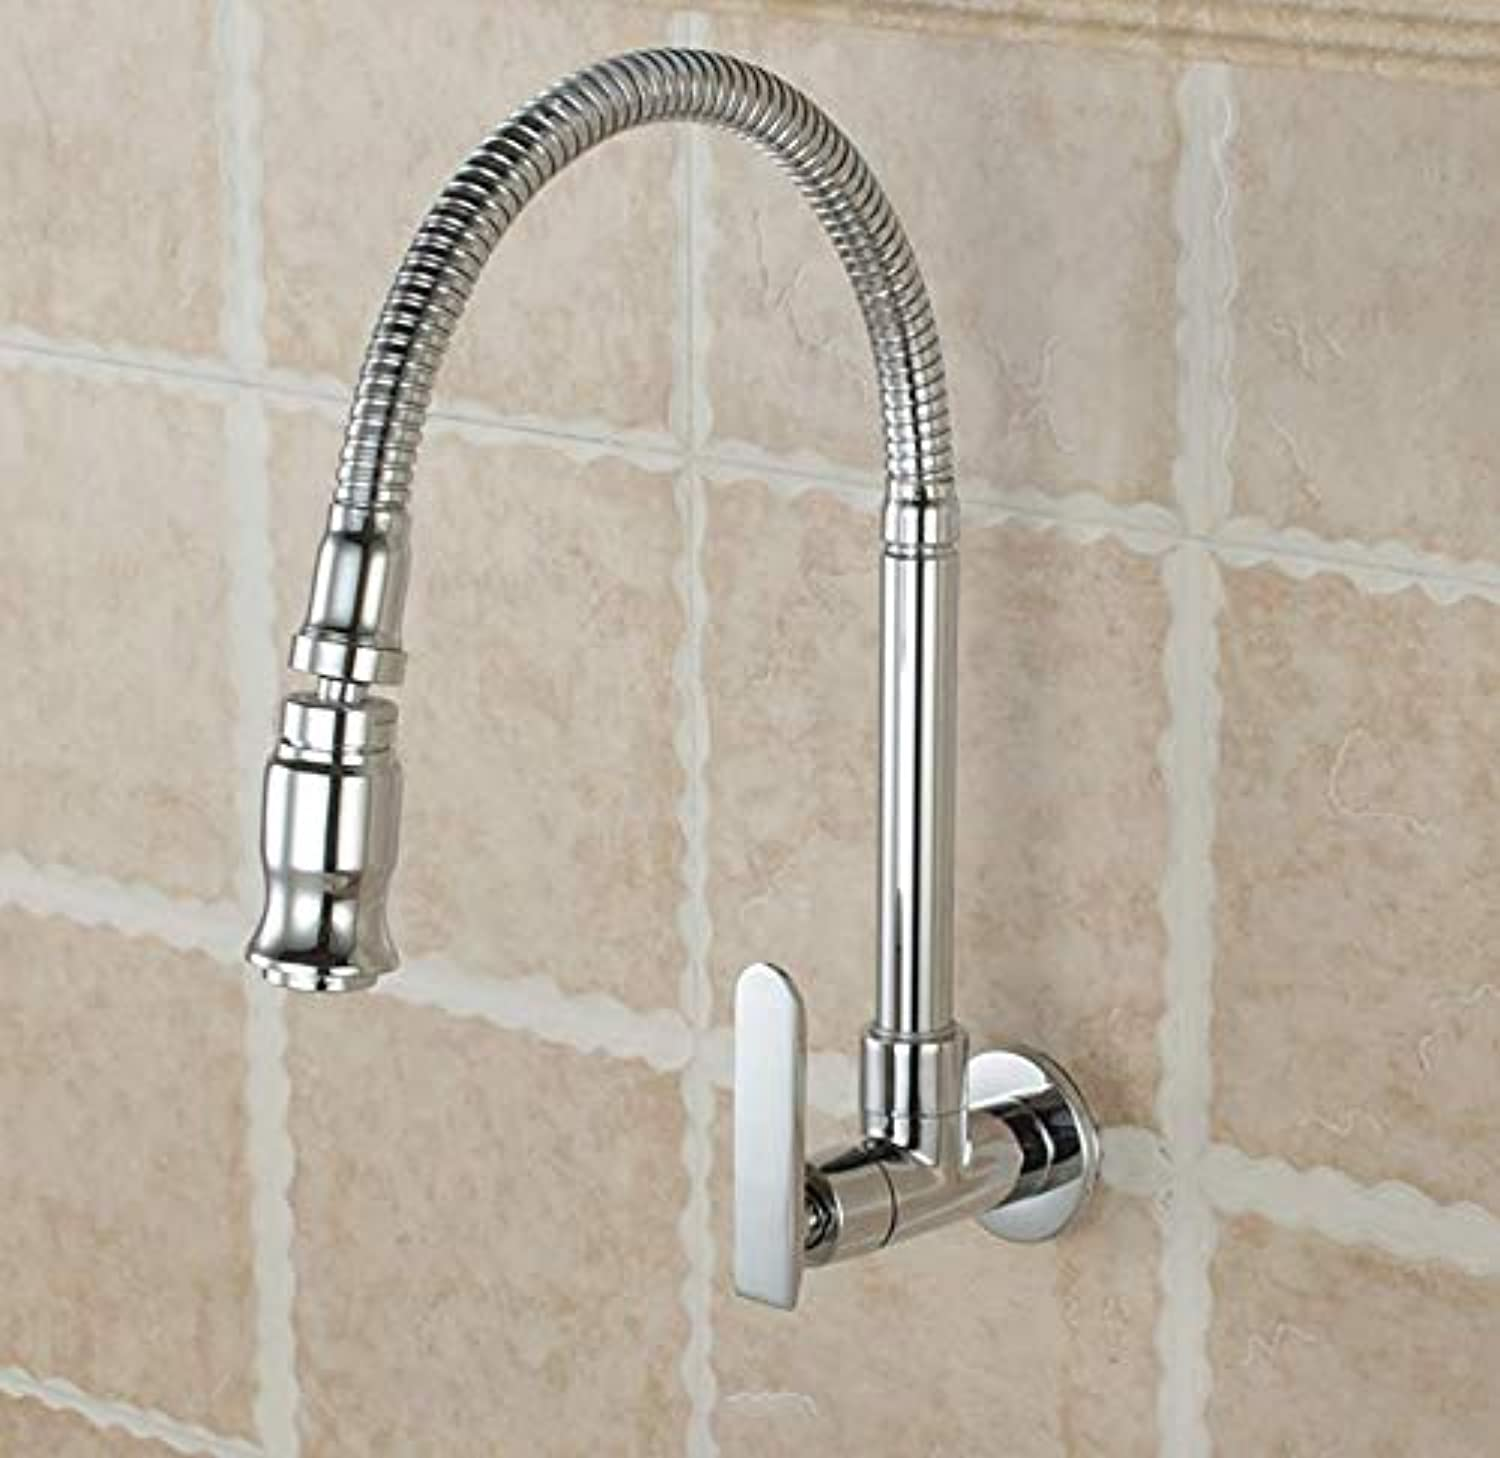 Bathroom Faucet Kitchen Sink Faucet Single Cold Balcony Mop Pool Faucet Universal Tube Laundry Pool Faucet Bendable Copper